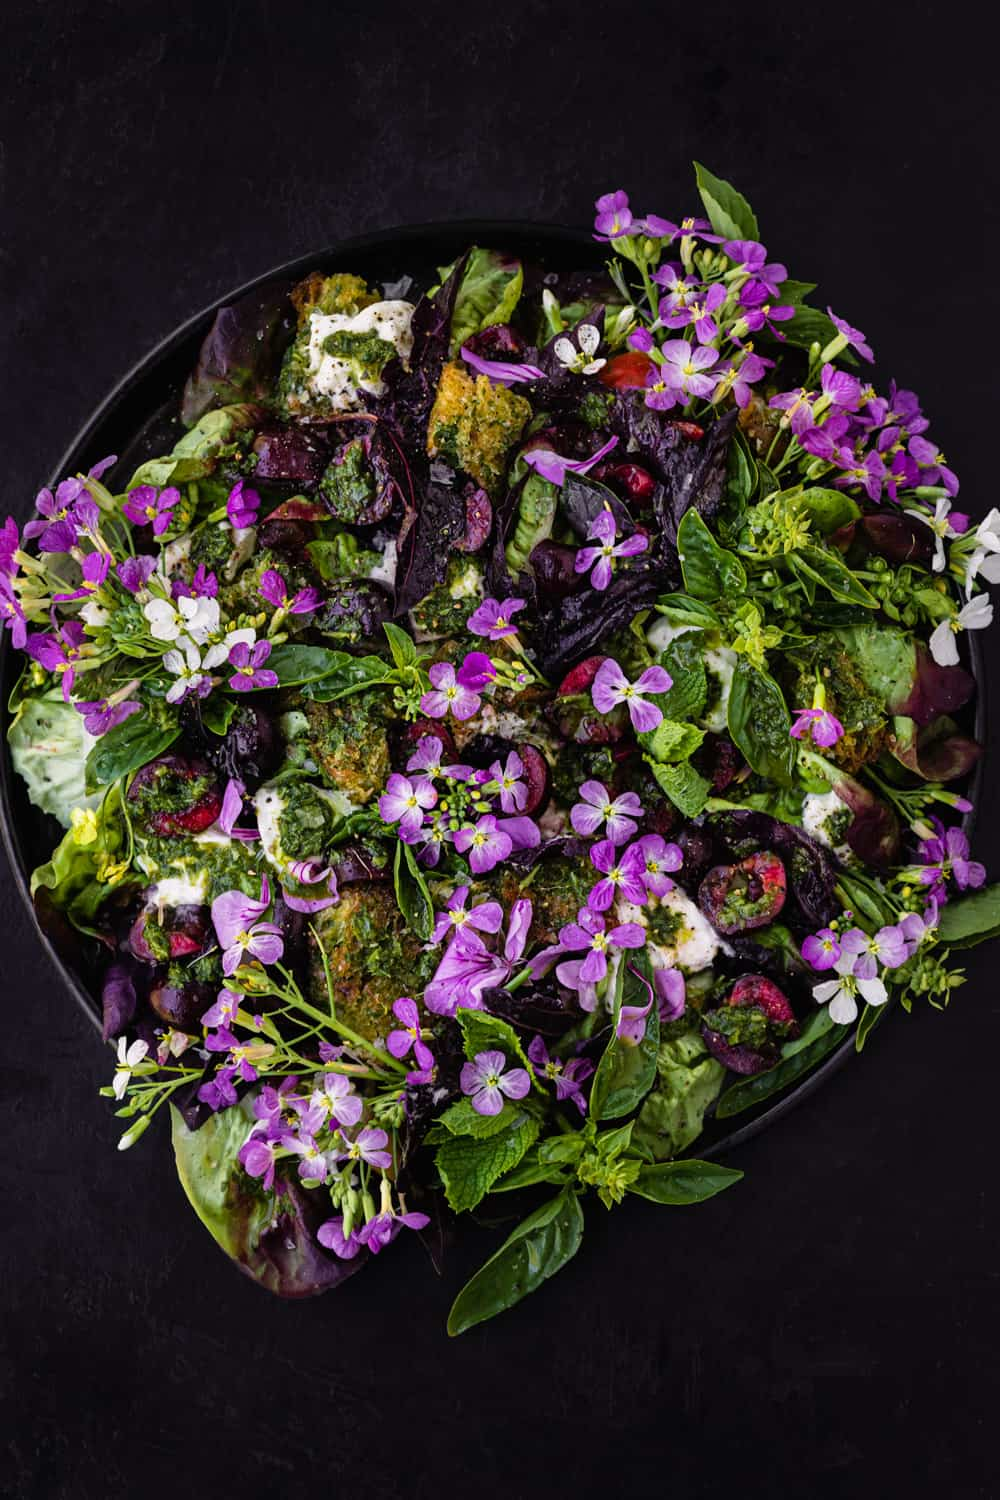 Summer cherry and fresh herb salad! with croutons, little gems, burrata and pesto vinaigrette on a black plate. Overhead shot on a black background.